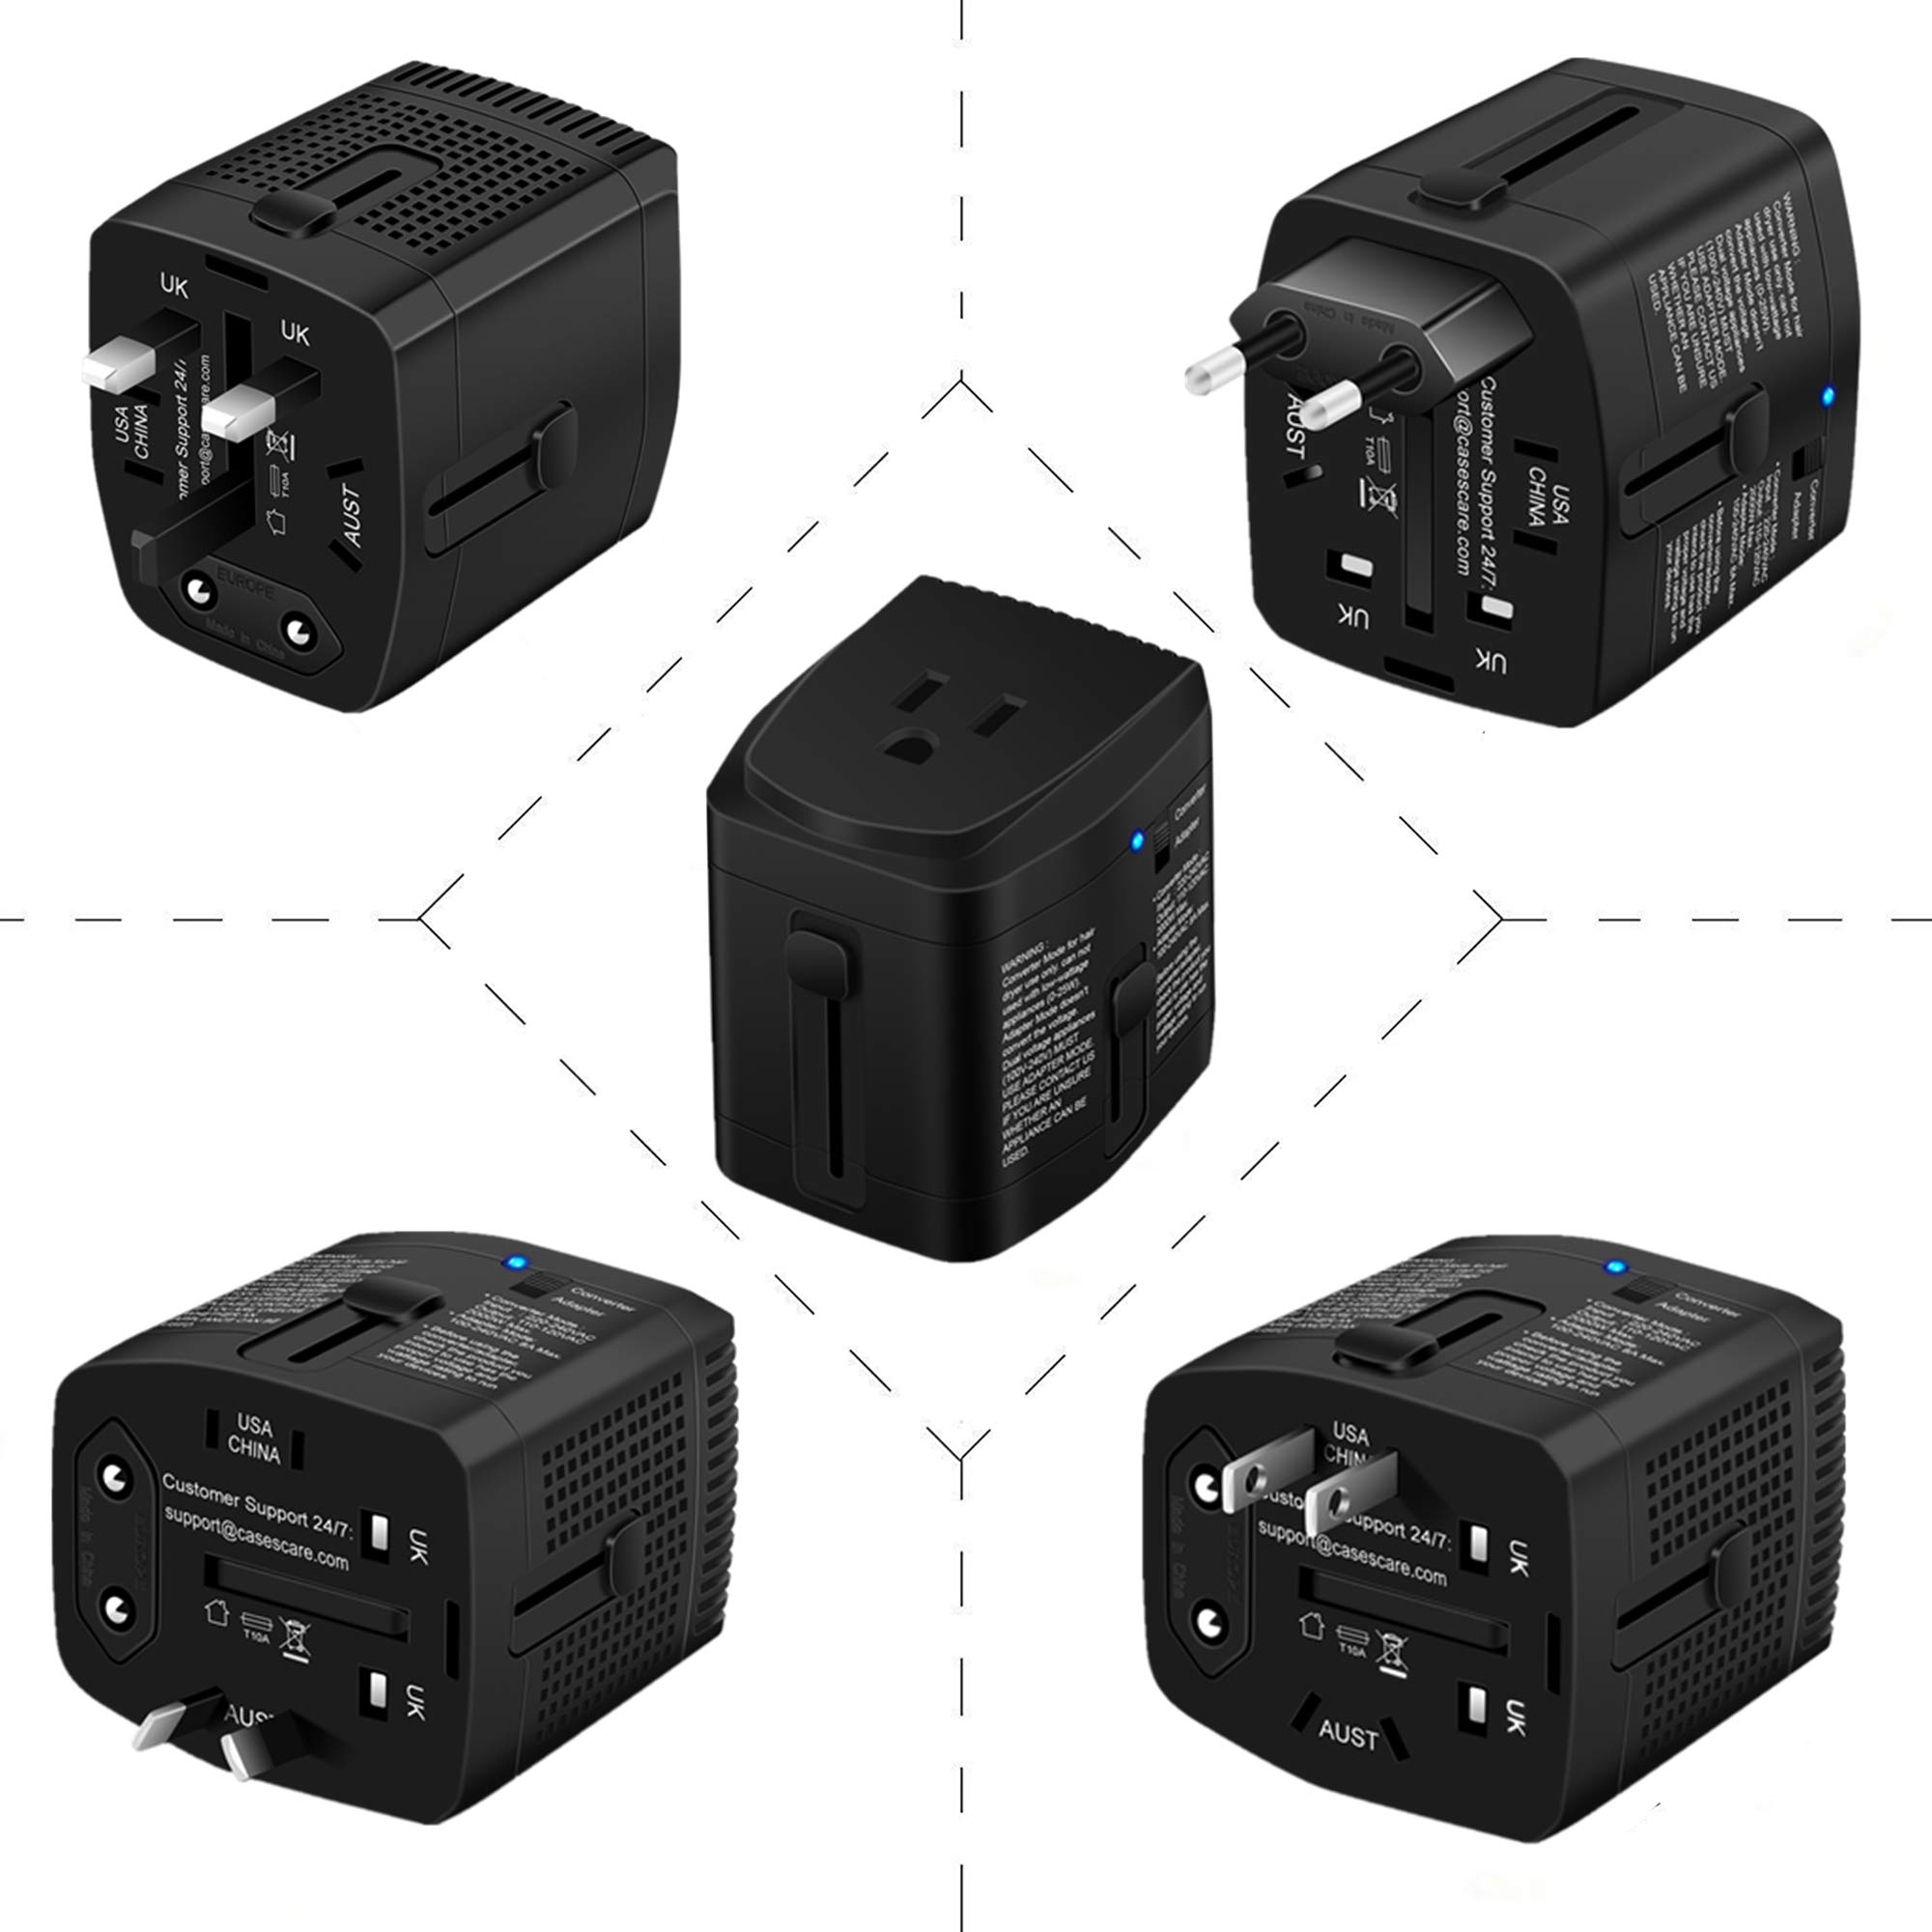 2000W Step Down Voltage Converter 220V to 110V and Universal Travel Plug Adapter Combo for Hair Dryer Steam Iron Cell Phone Laptop MacBook - Plug Adaptor US to Europe, UK, AU, Asia Over 150 Countries by ElecLead (Image #6)